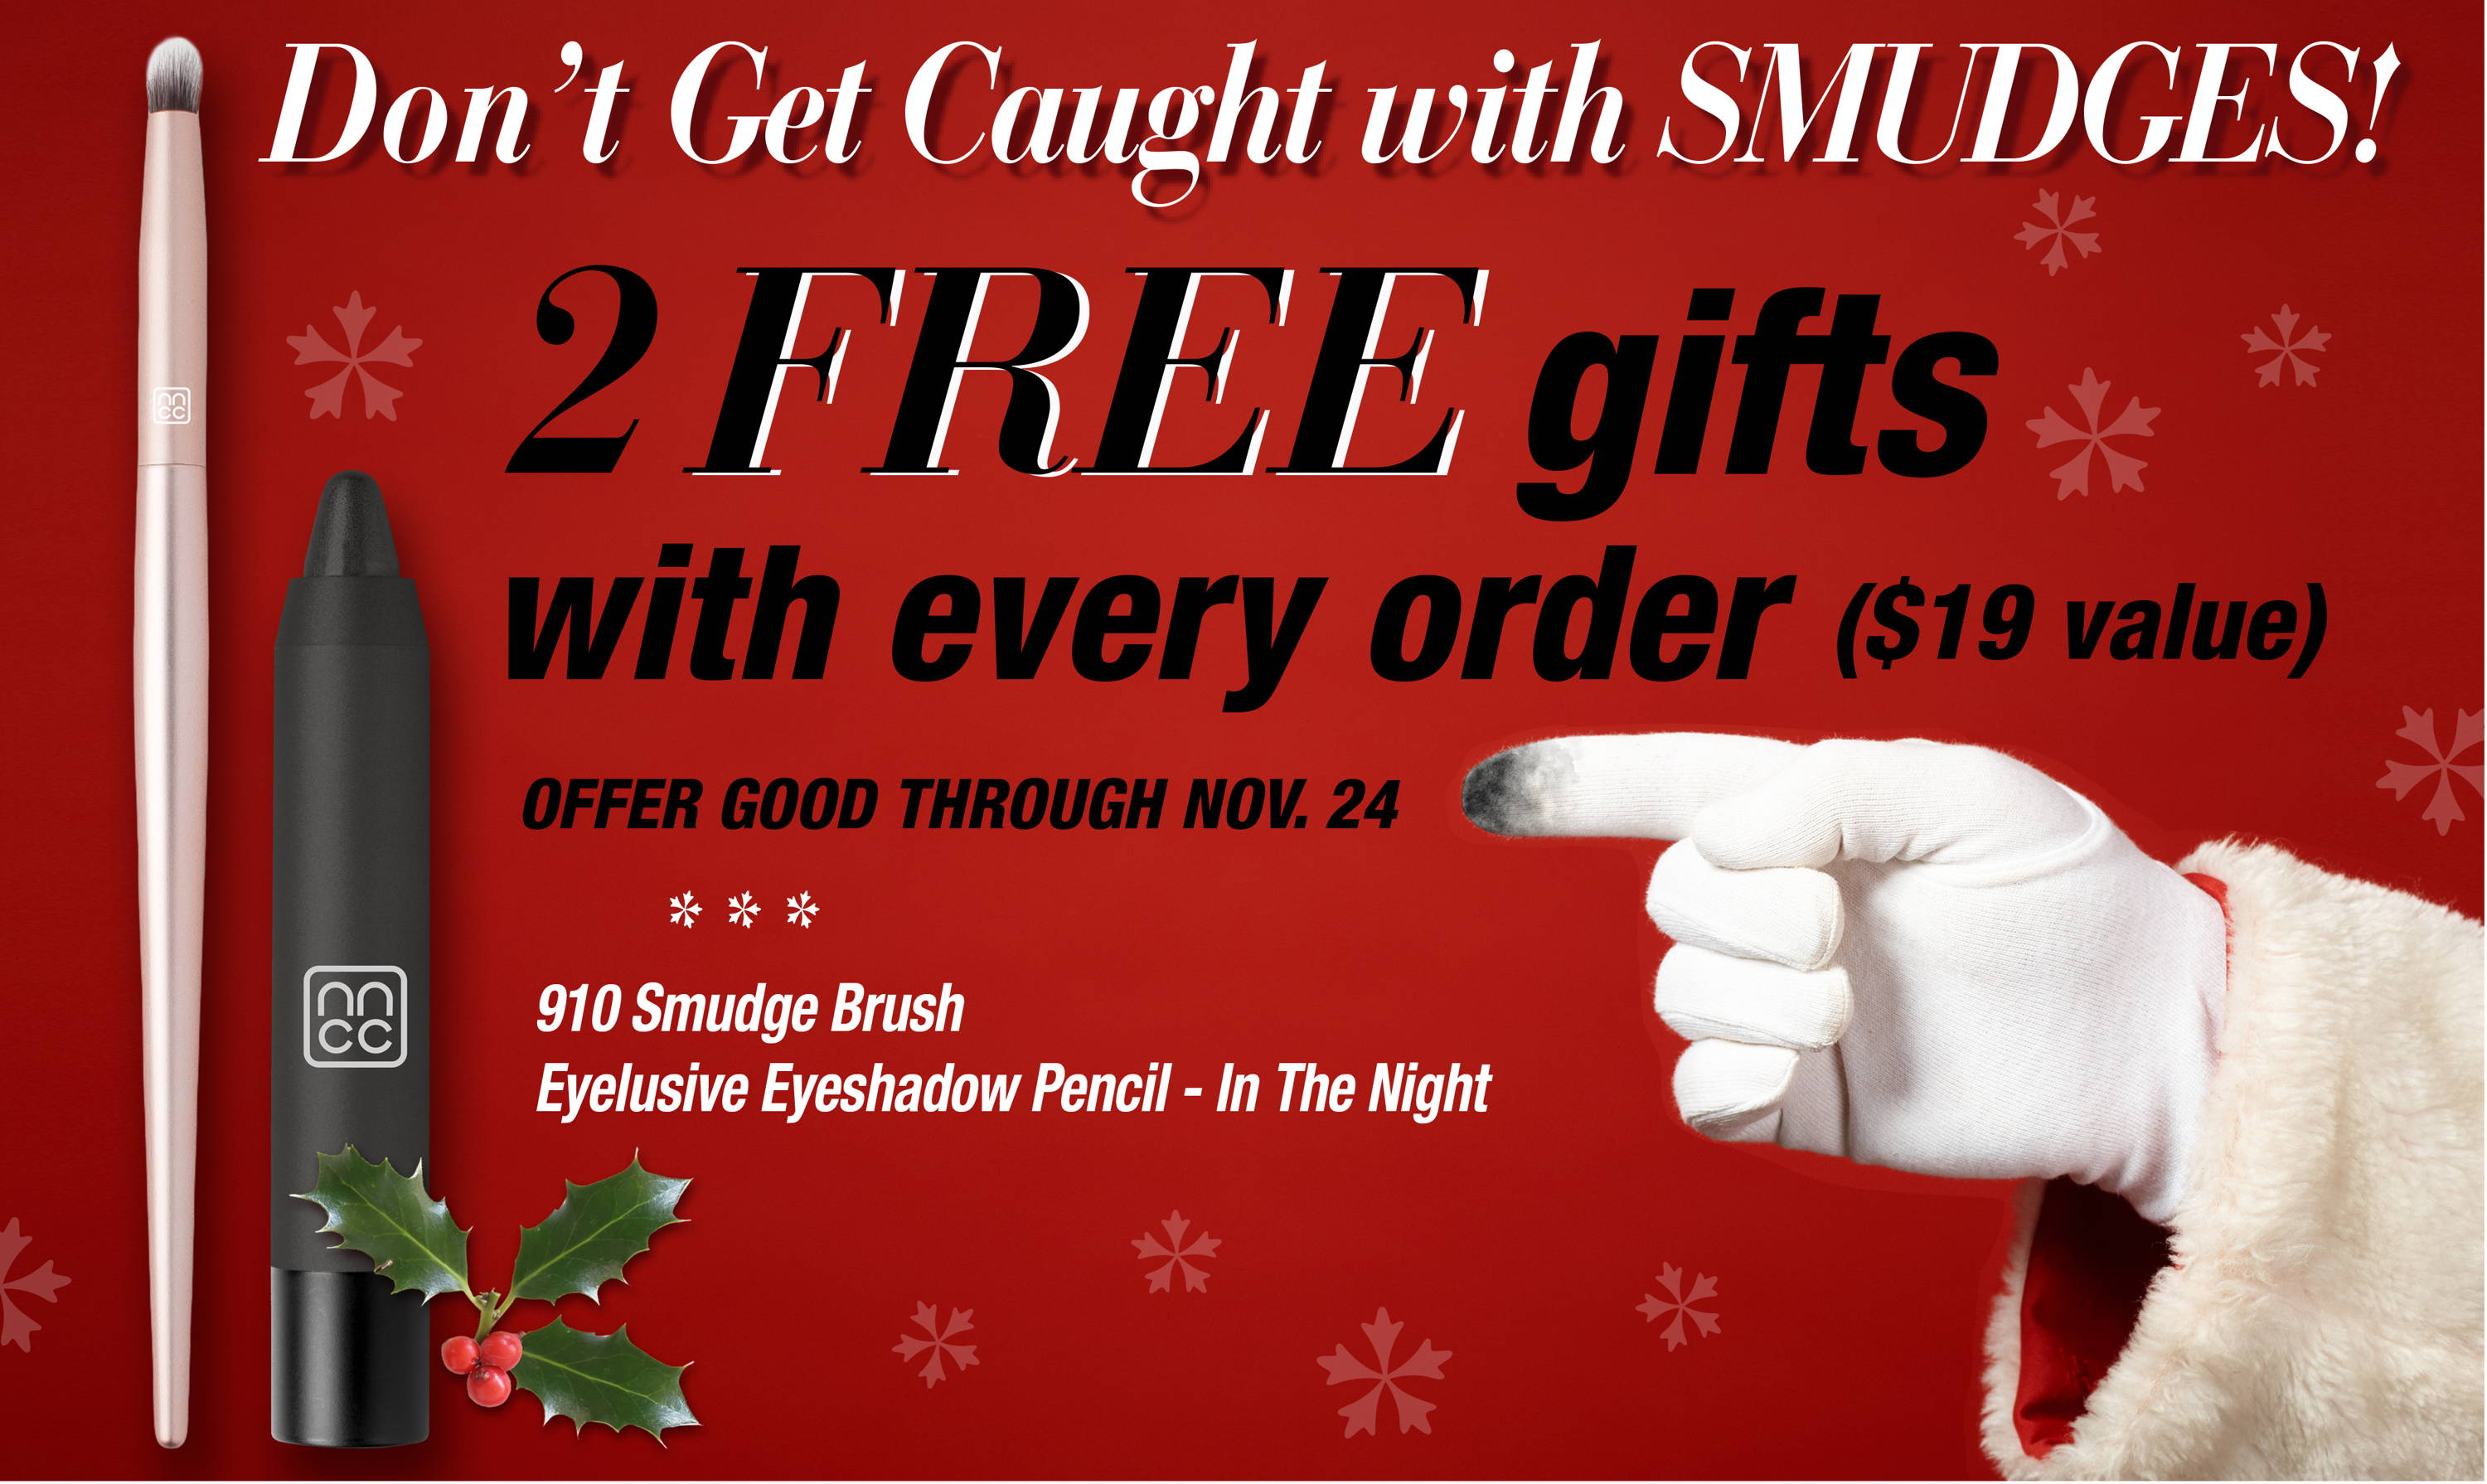 Get a Free Smudge Brush and a Free Eyelusive Eyeshadow pencil in sahde in the night with any purchase until November 24th